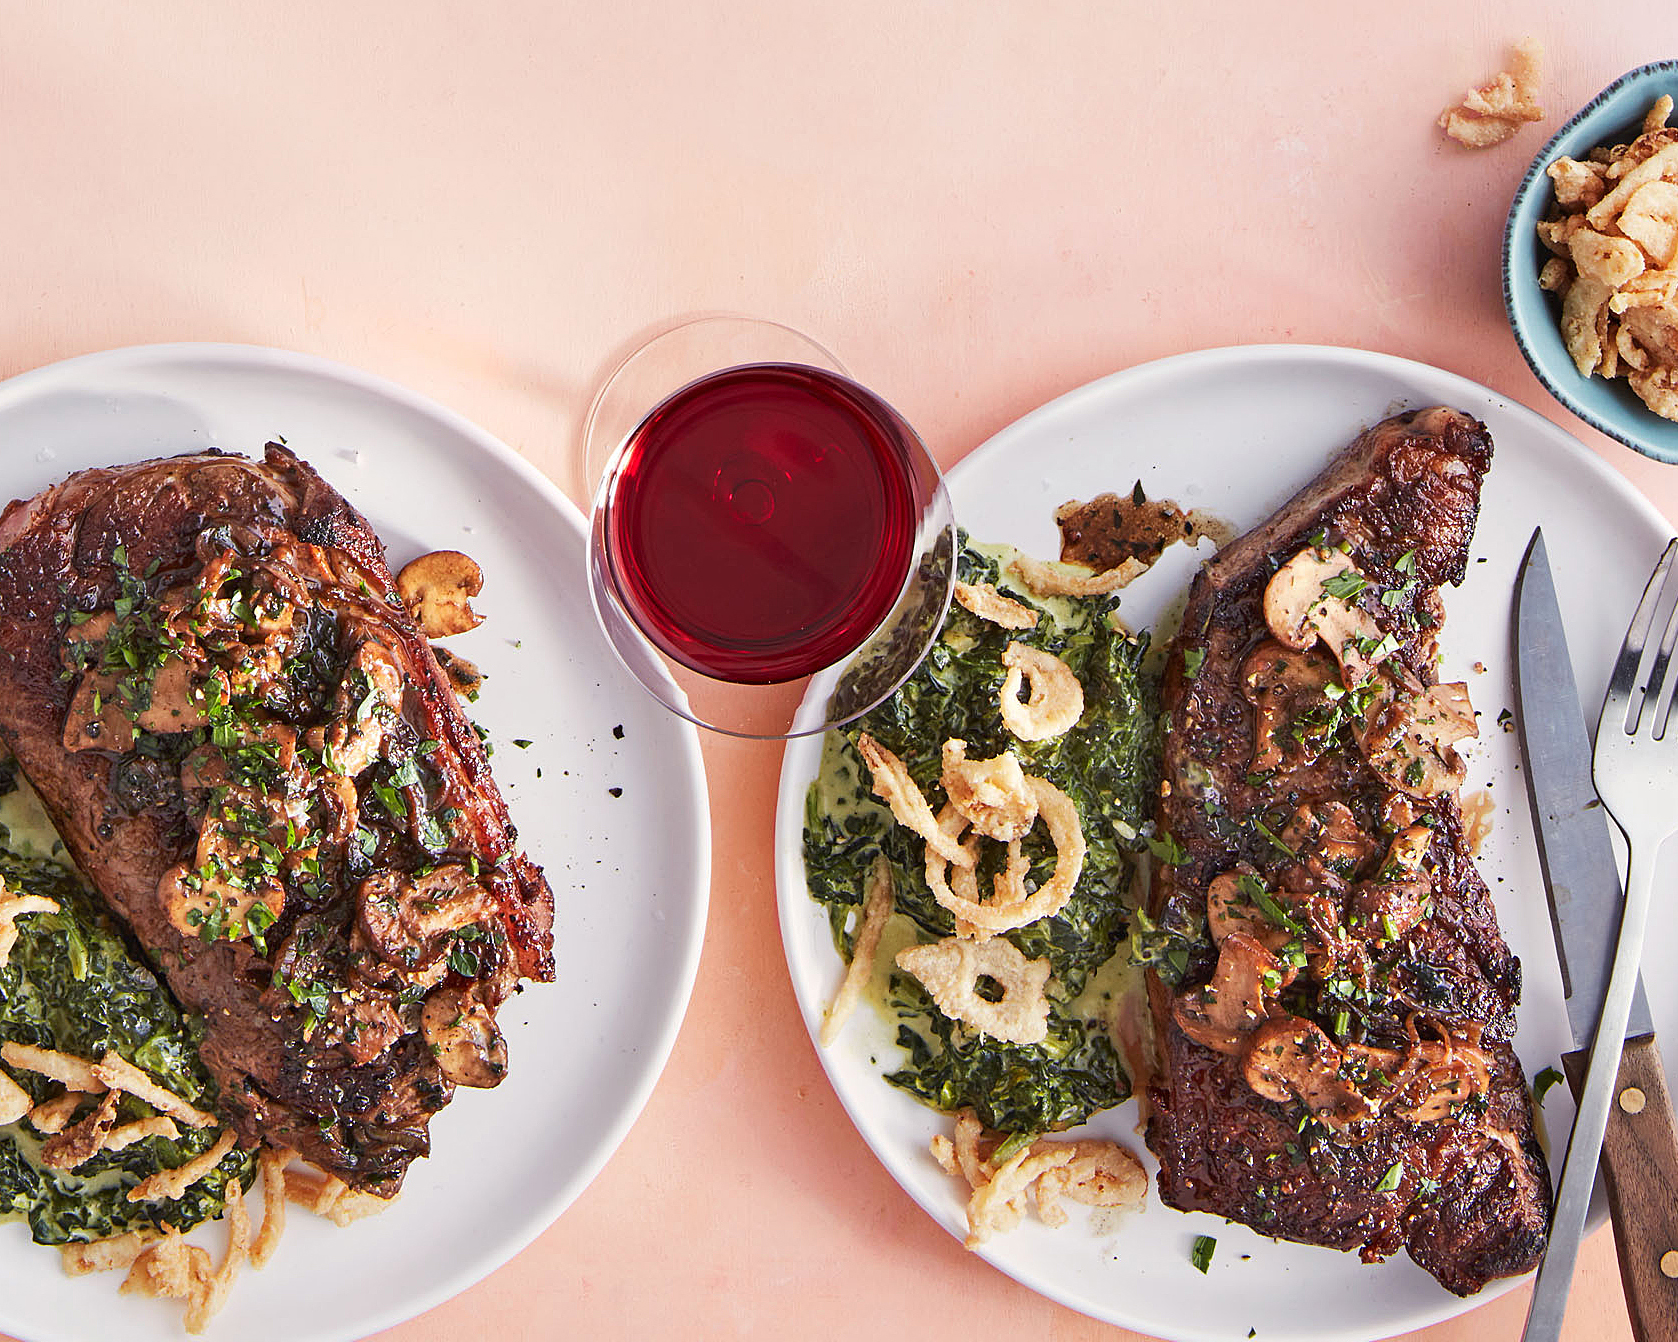 Steaks with Sherry 'Shrooms, Creamed Spinach & Crispy Onions